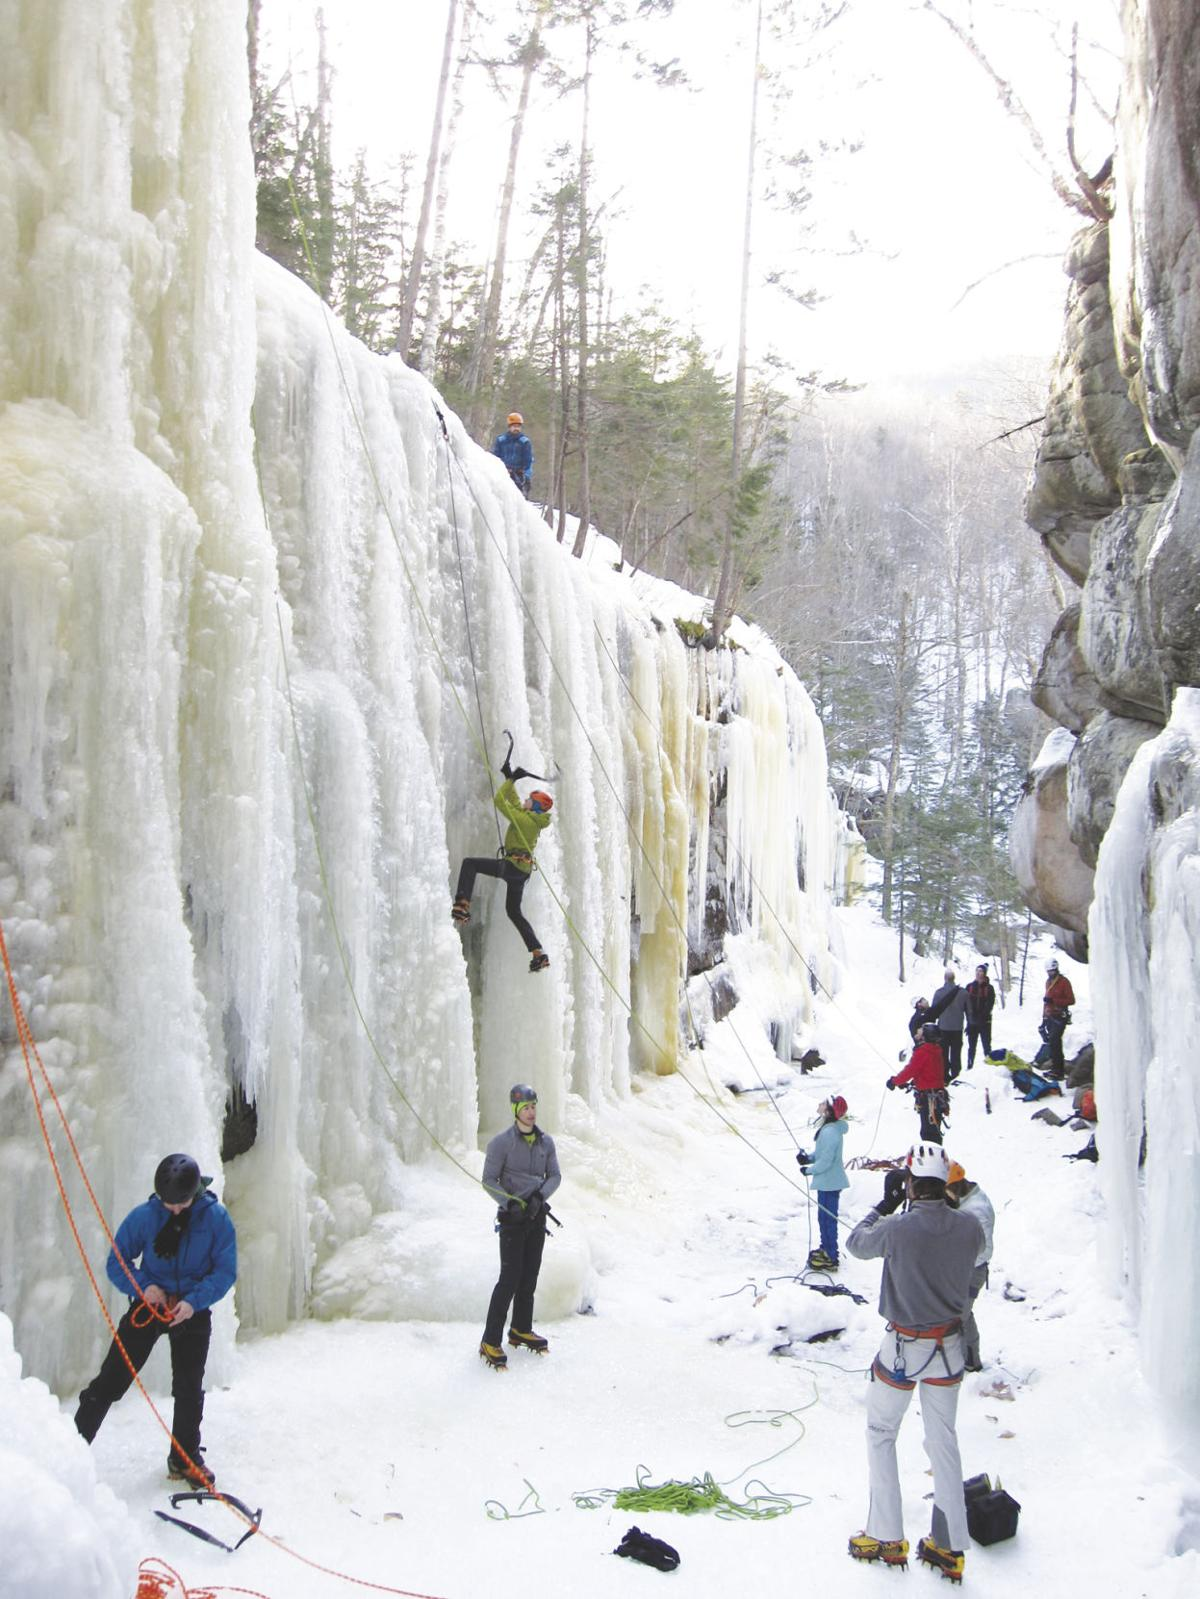 12-22-18 Parsons-Ice climbers at Pitcher Falls